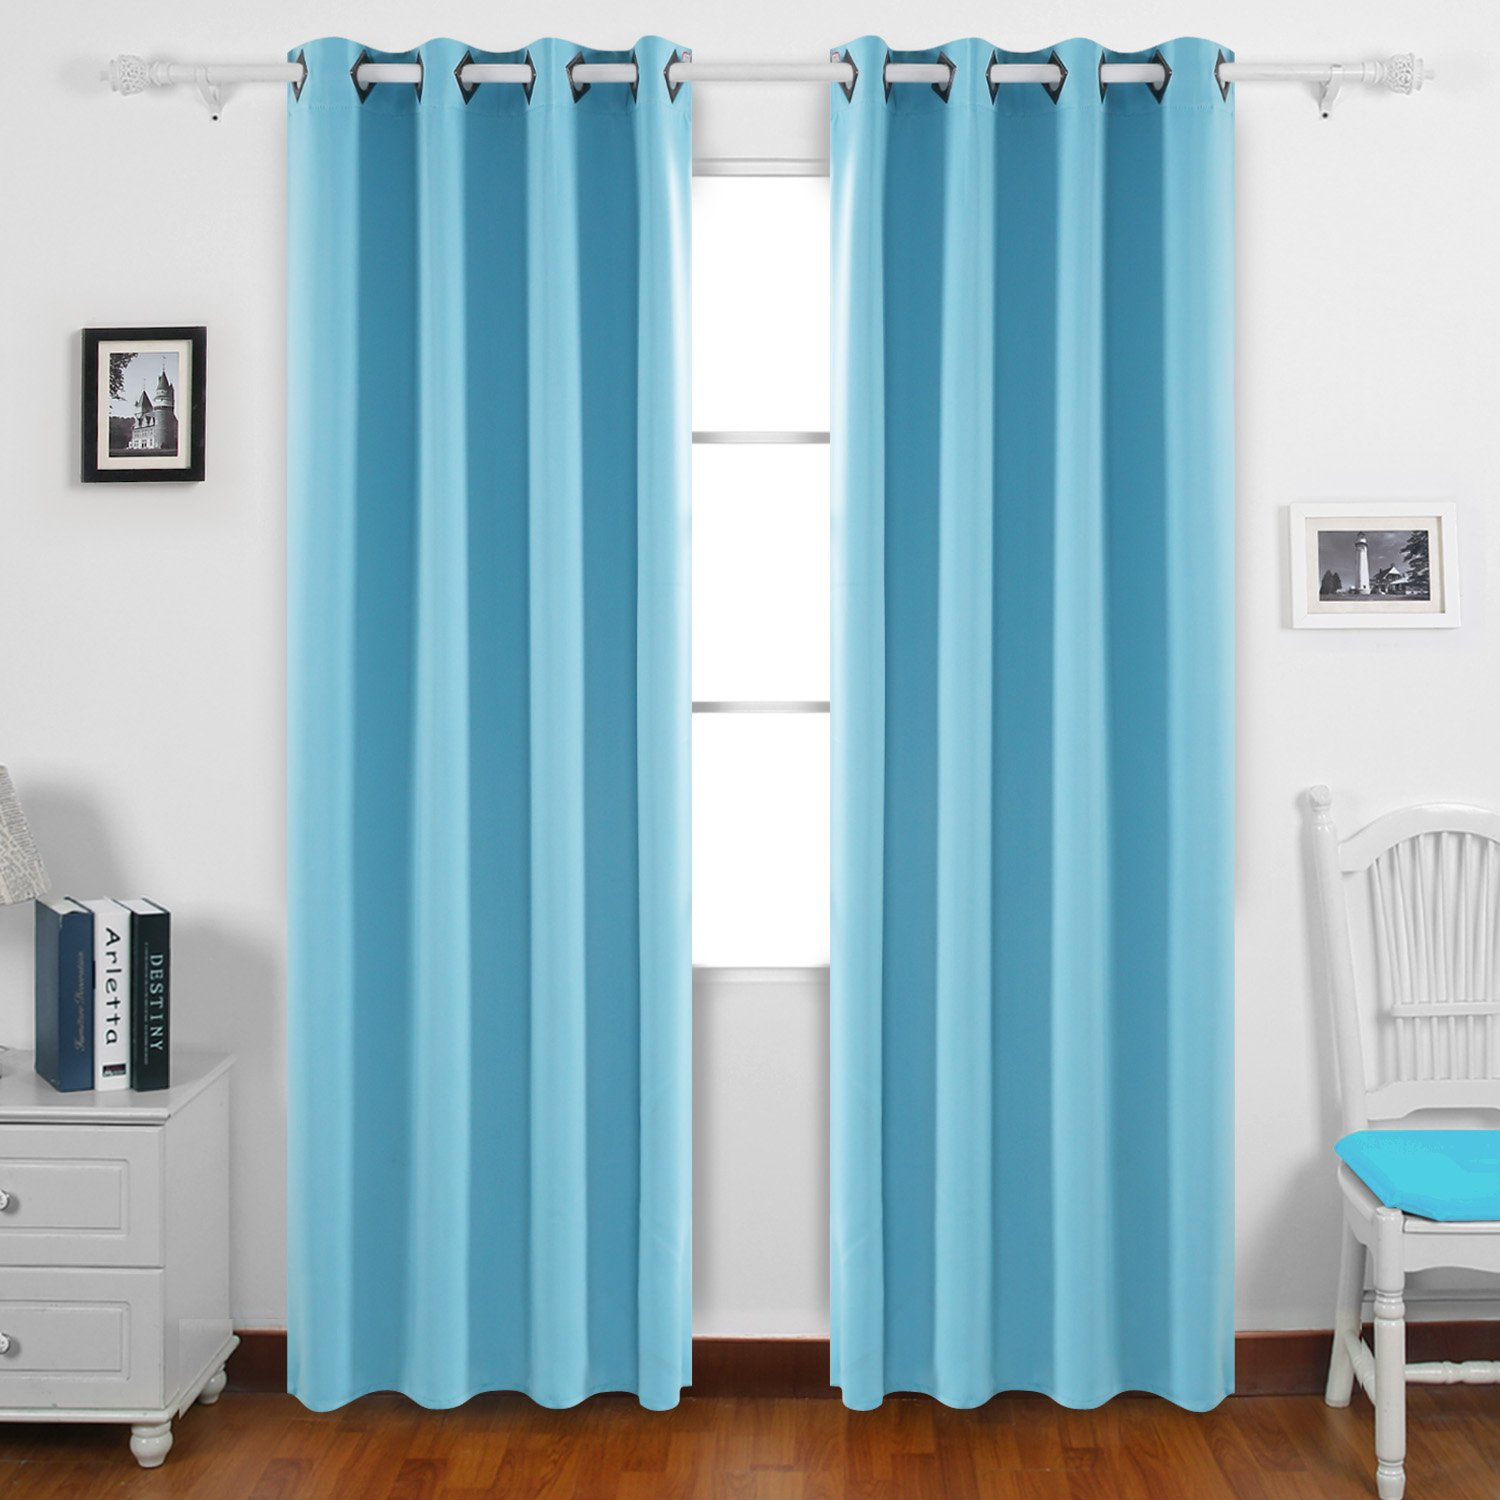 curtains blackout in to the buy curtain amazon bestseekers best thermal